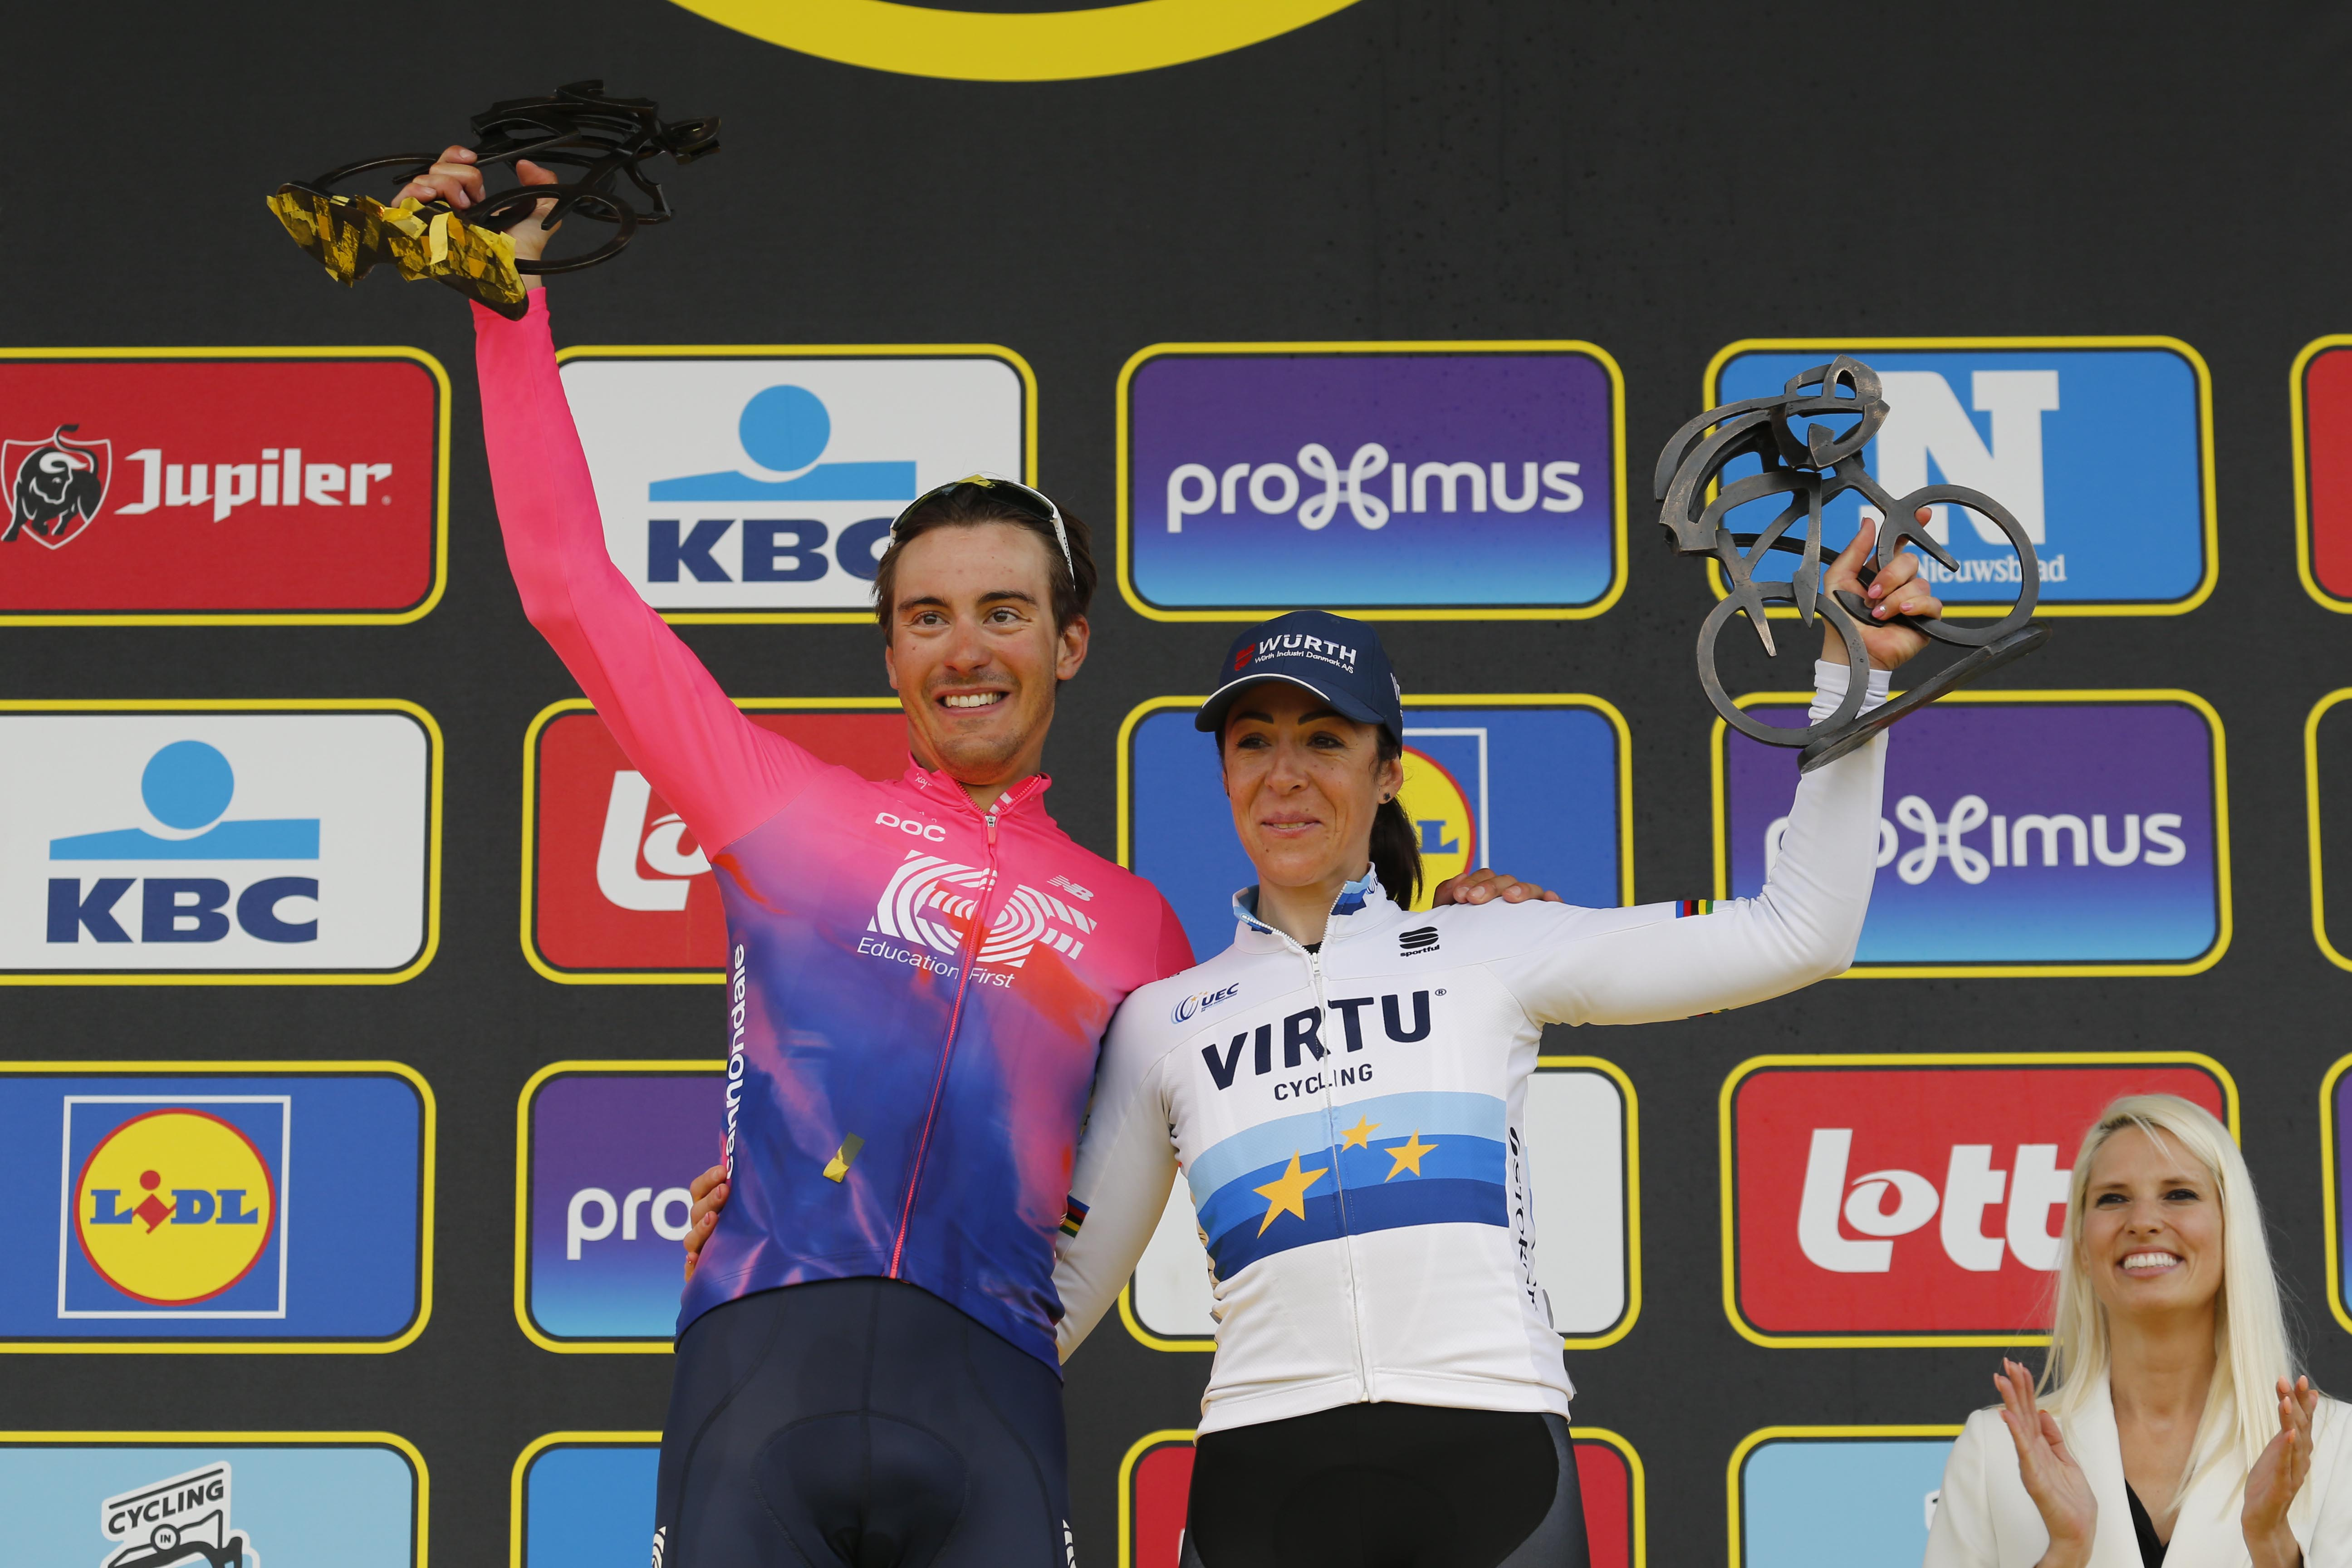 How much prize money did Alberto Bettiol and Marta Bastianelli get for Tour of Flanders wins?